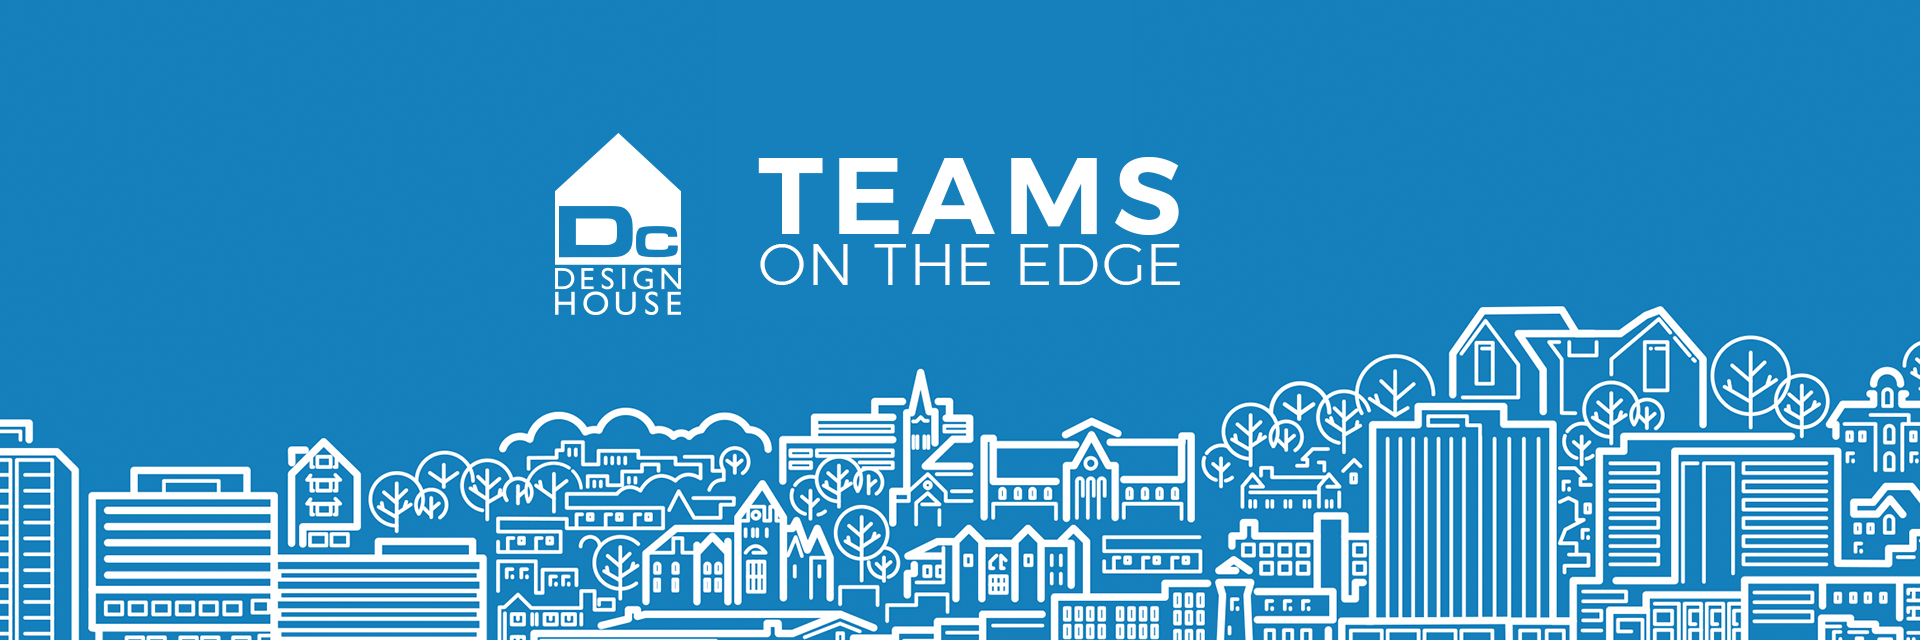 Dc presents: Teams on the Edge, Episode 2: Darrell Edwards, Studio Manager